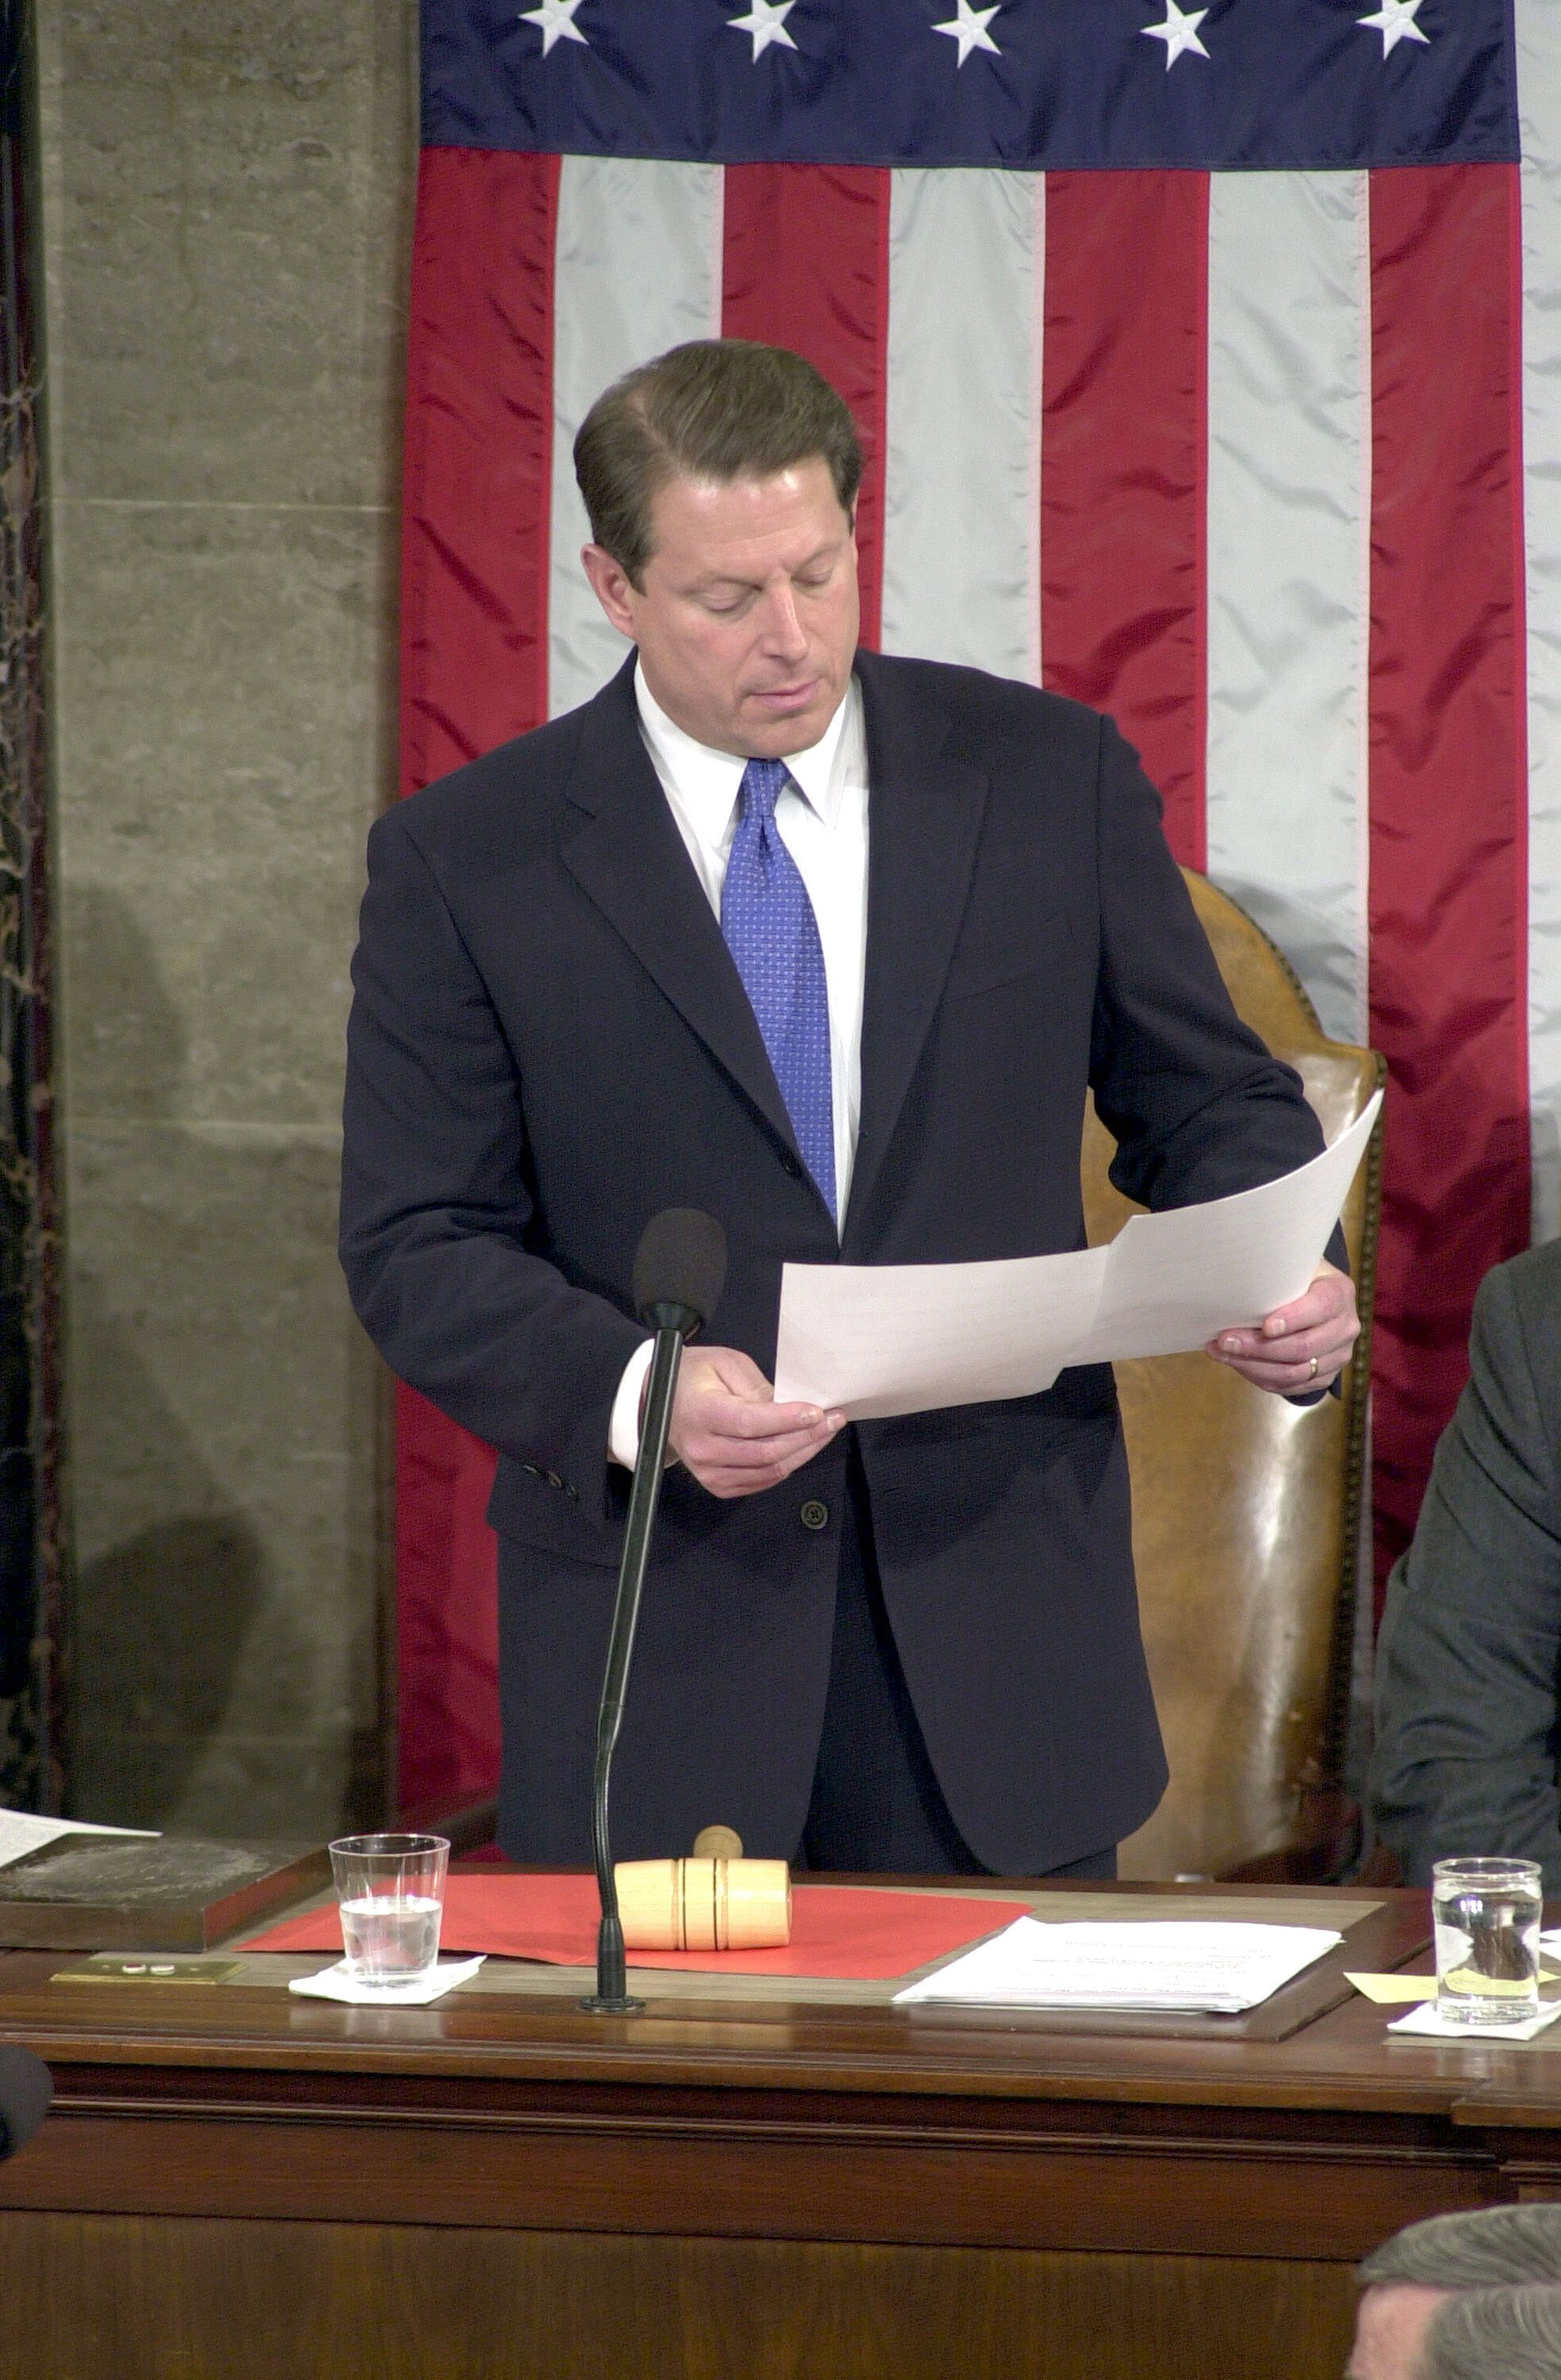 Then-Vice President Al Gore was put in the uncomfortable position of certifying before Congress in early January of 2001 that